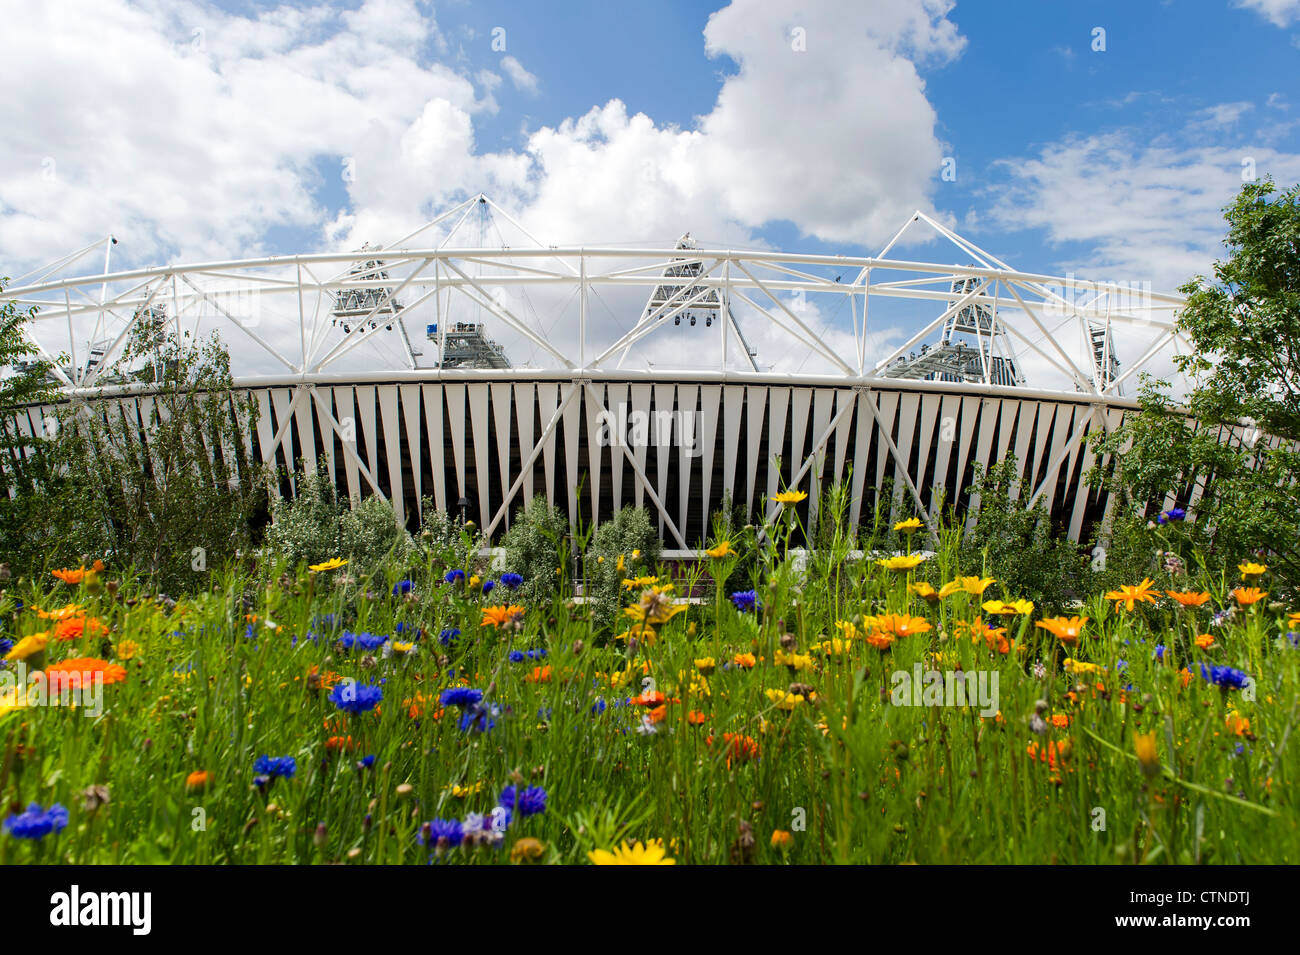 The Olympic Stadium in Stratford, London. - Stock Image